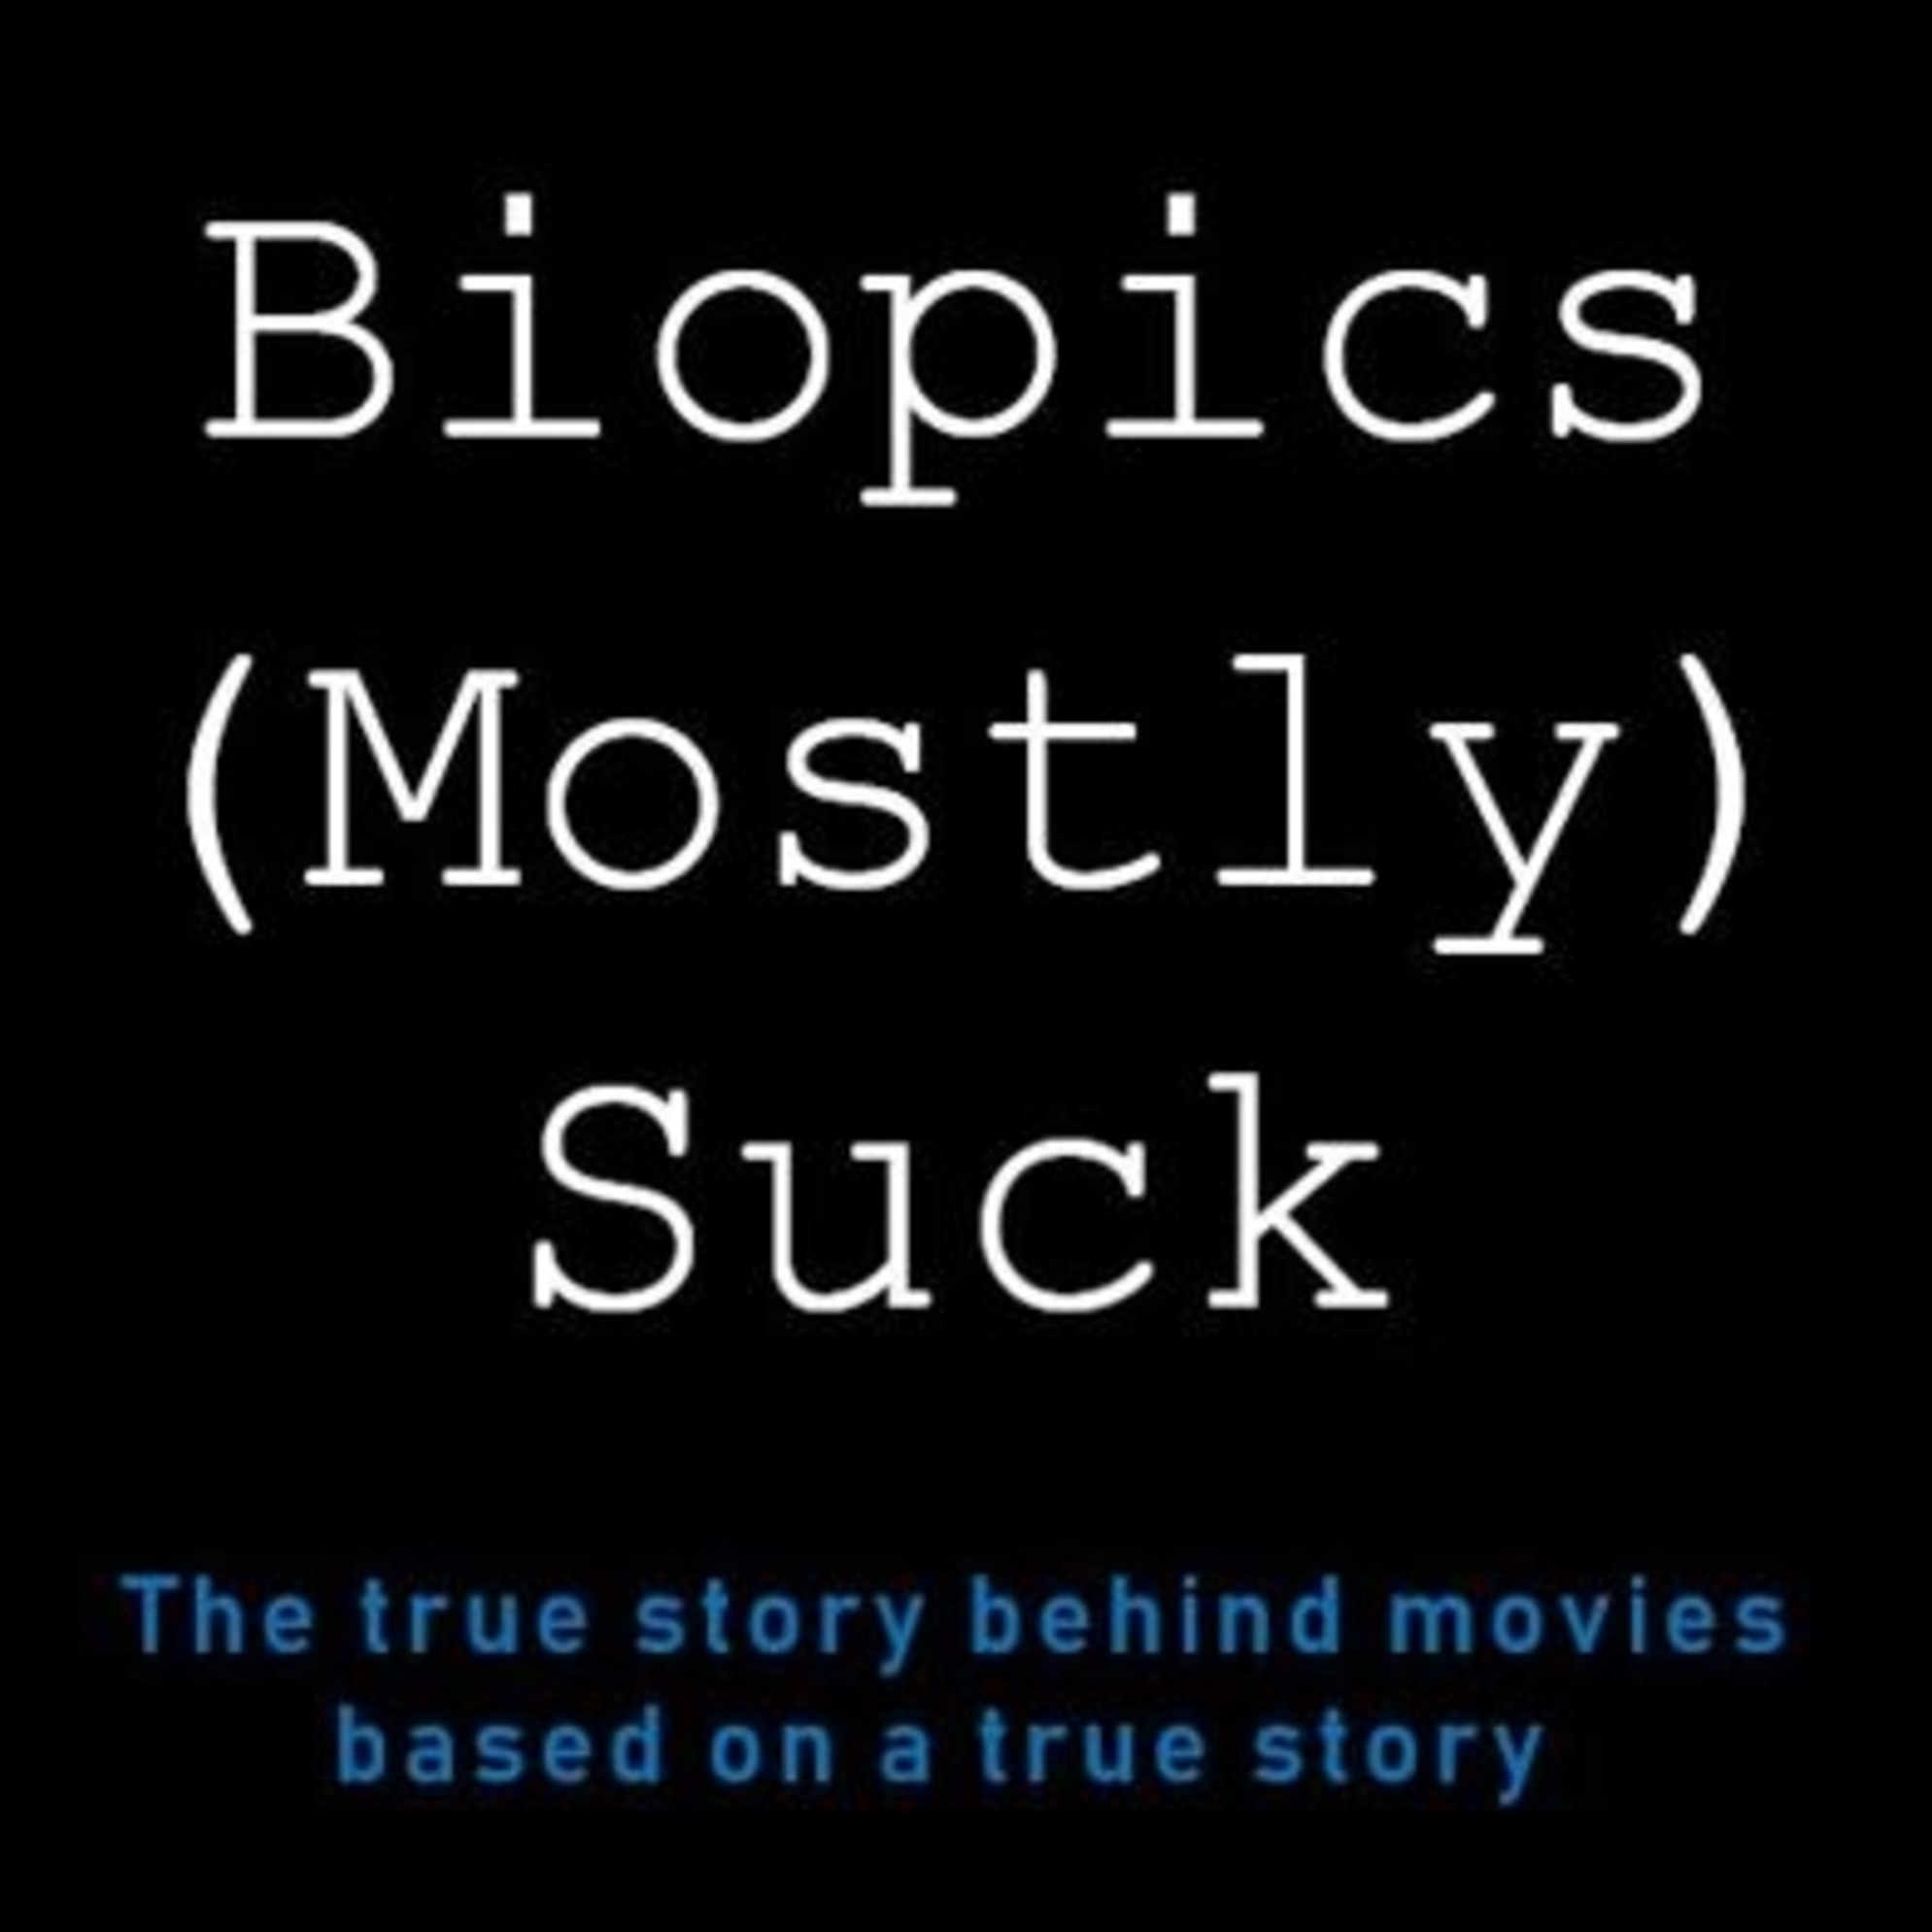 Biopics (Mostly) Suck - We Are Going On Hiatus